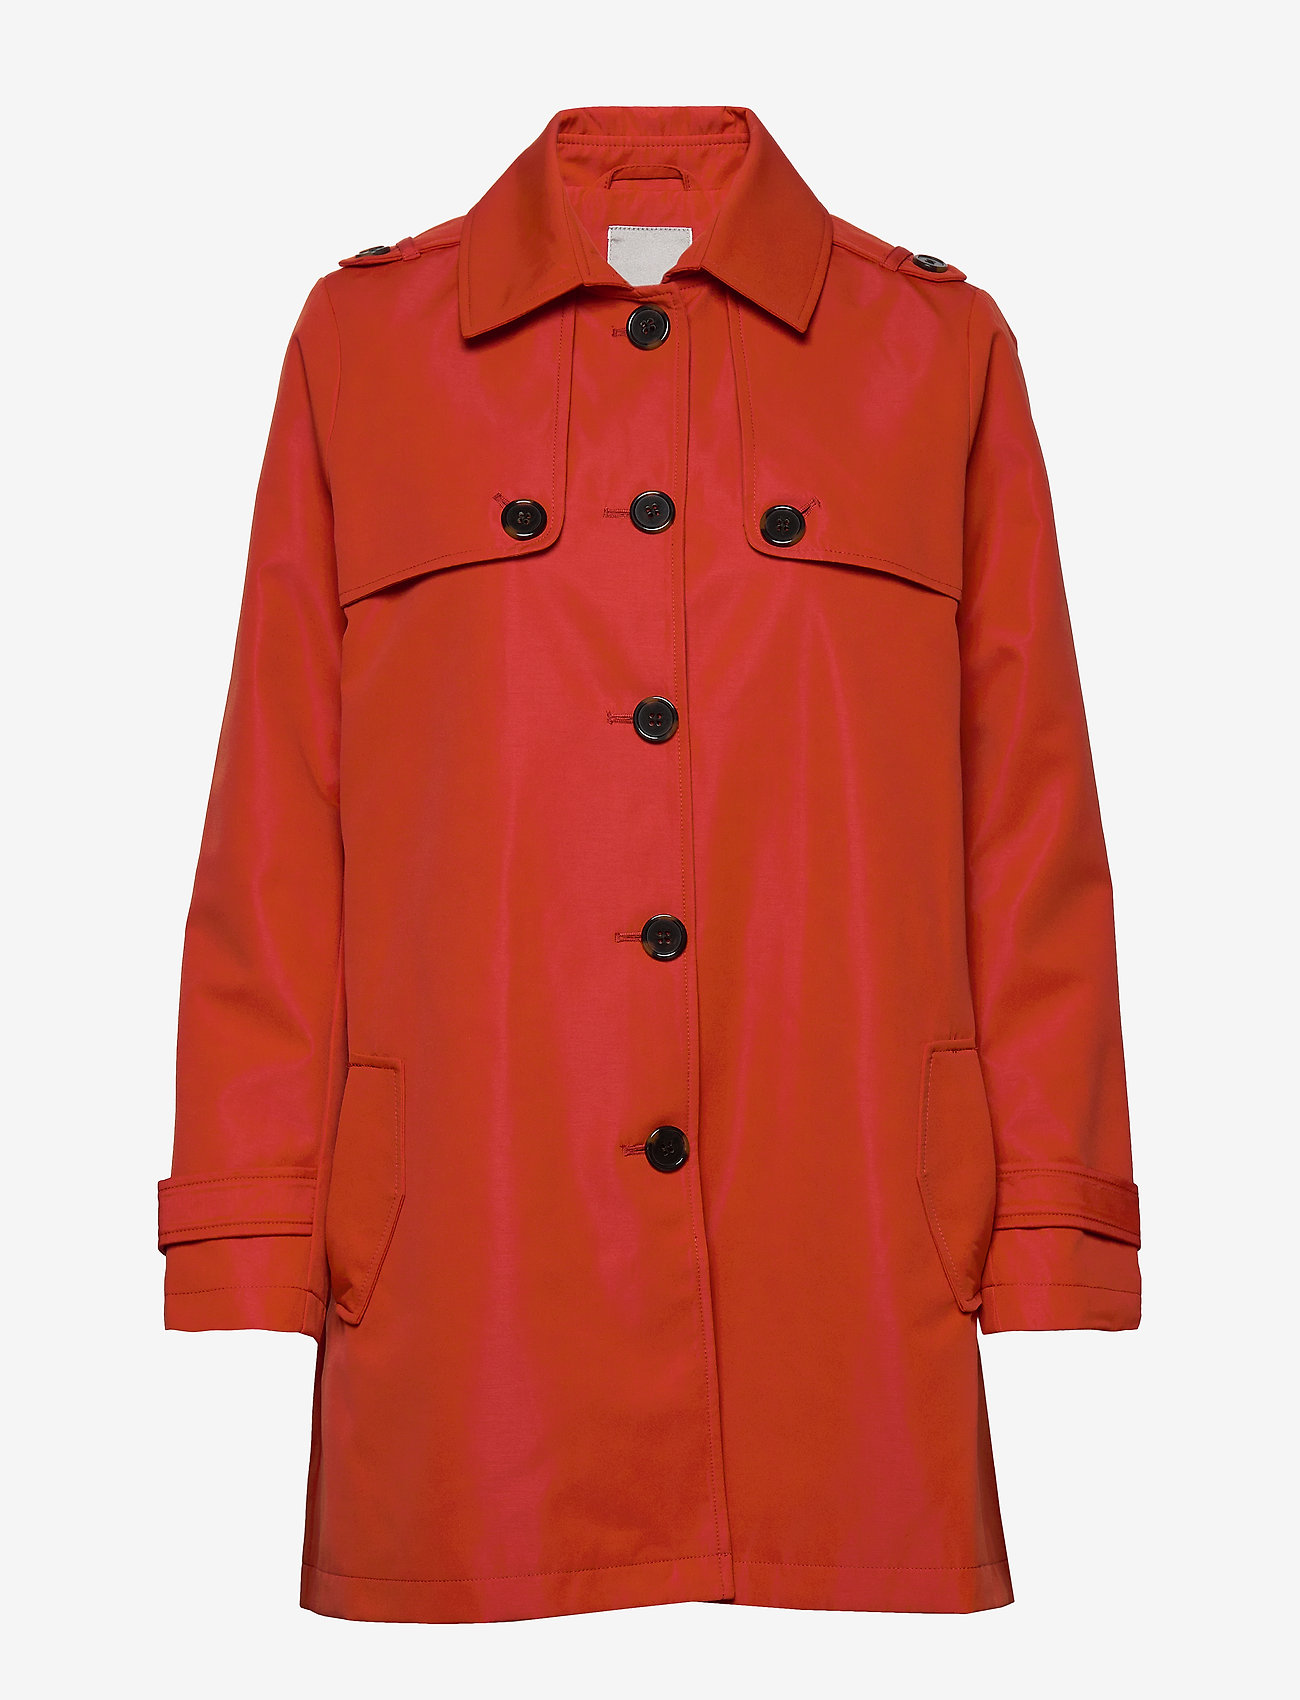 Frhatrench 1 Outerwear (Ketchup) (519.97 kr) - Fransa